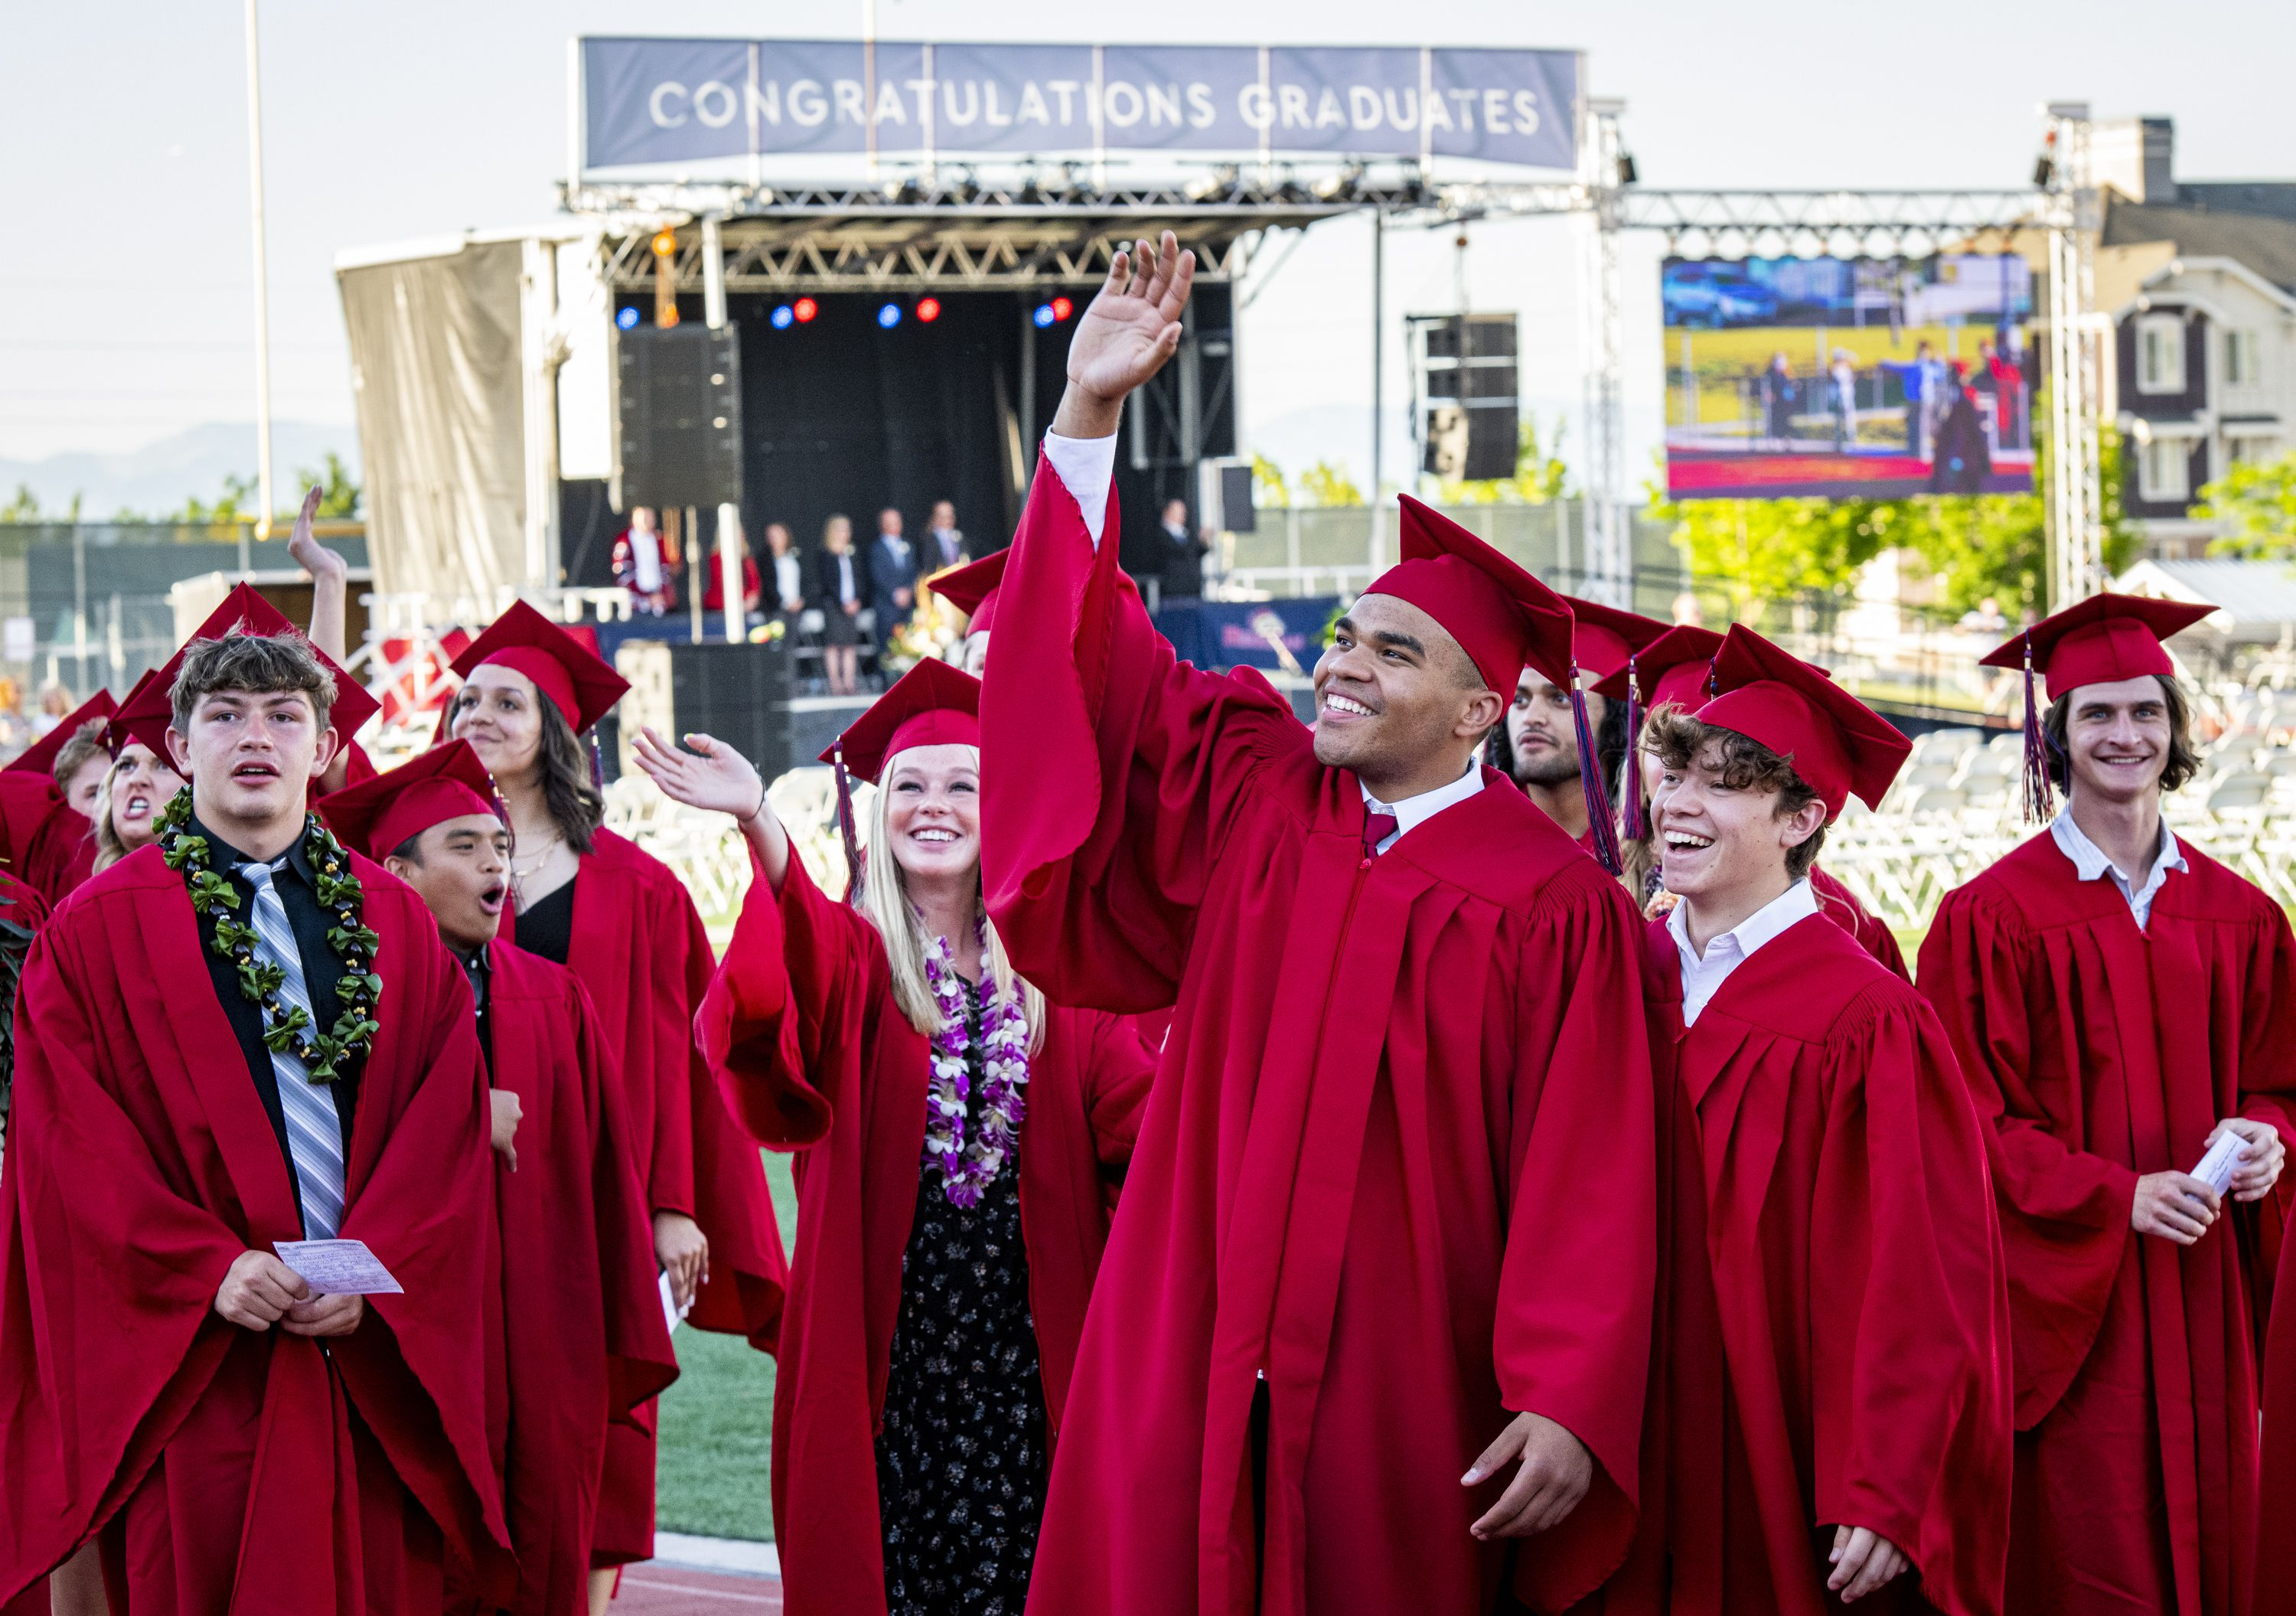 (Isaac Hale | Special to The Tribune) Graduates wave to family and friends while they process onto the field during Herriman High School's graduation ceremony held Thursday, June 3, 2021.